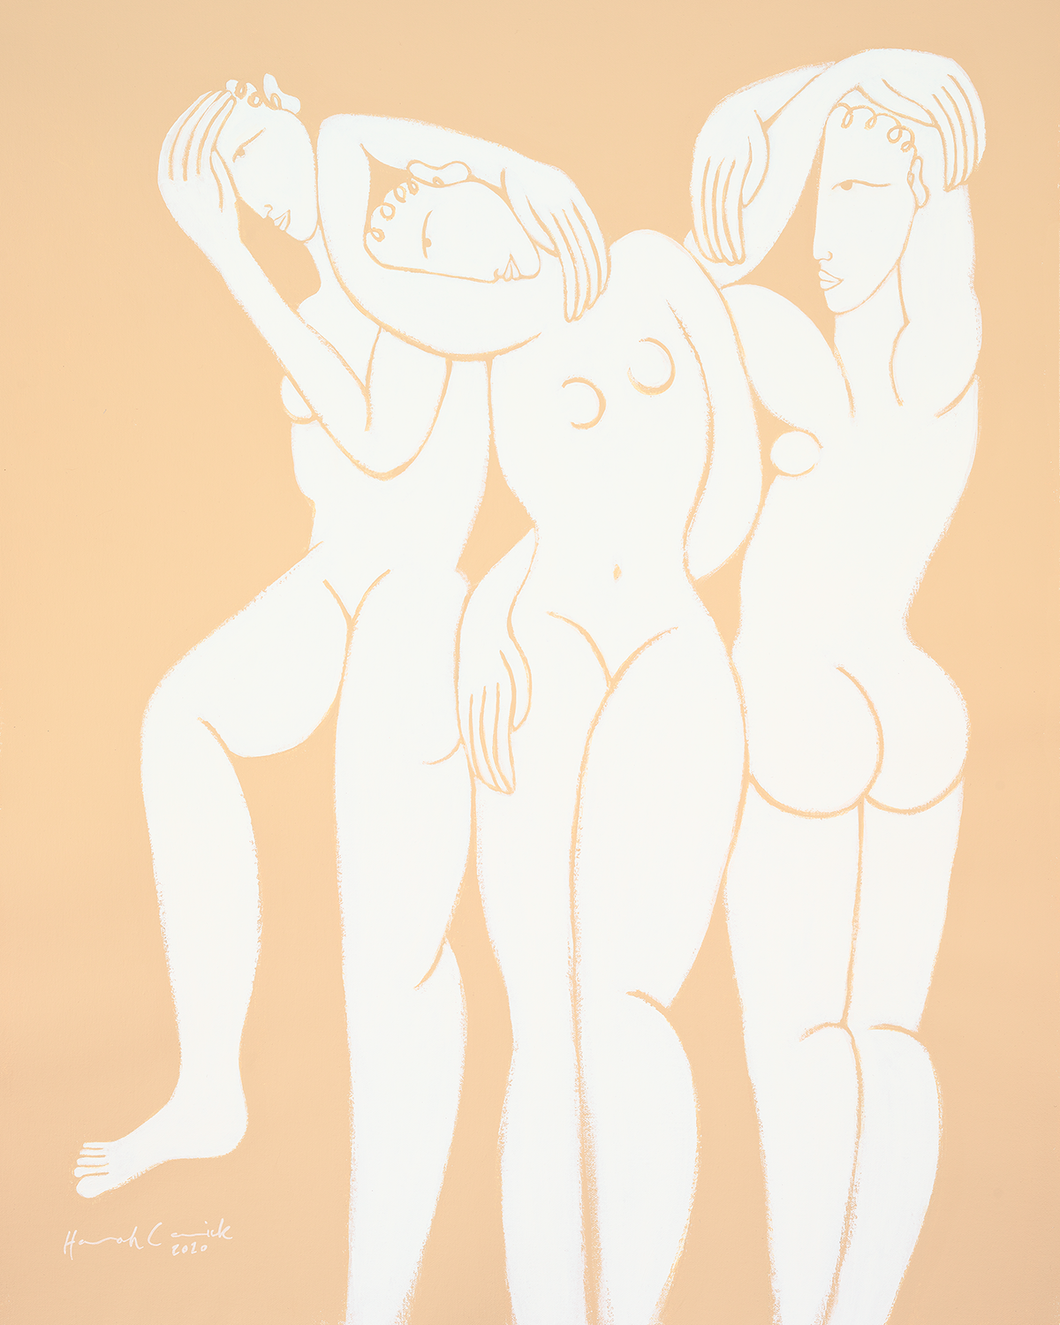 Hannah Carrick x Bed Threads 'Guuurls' Print